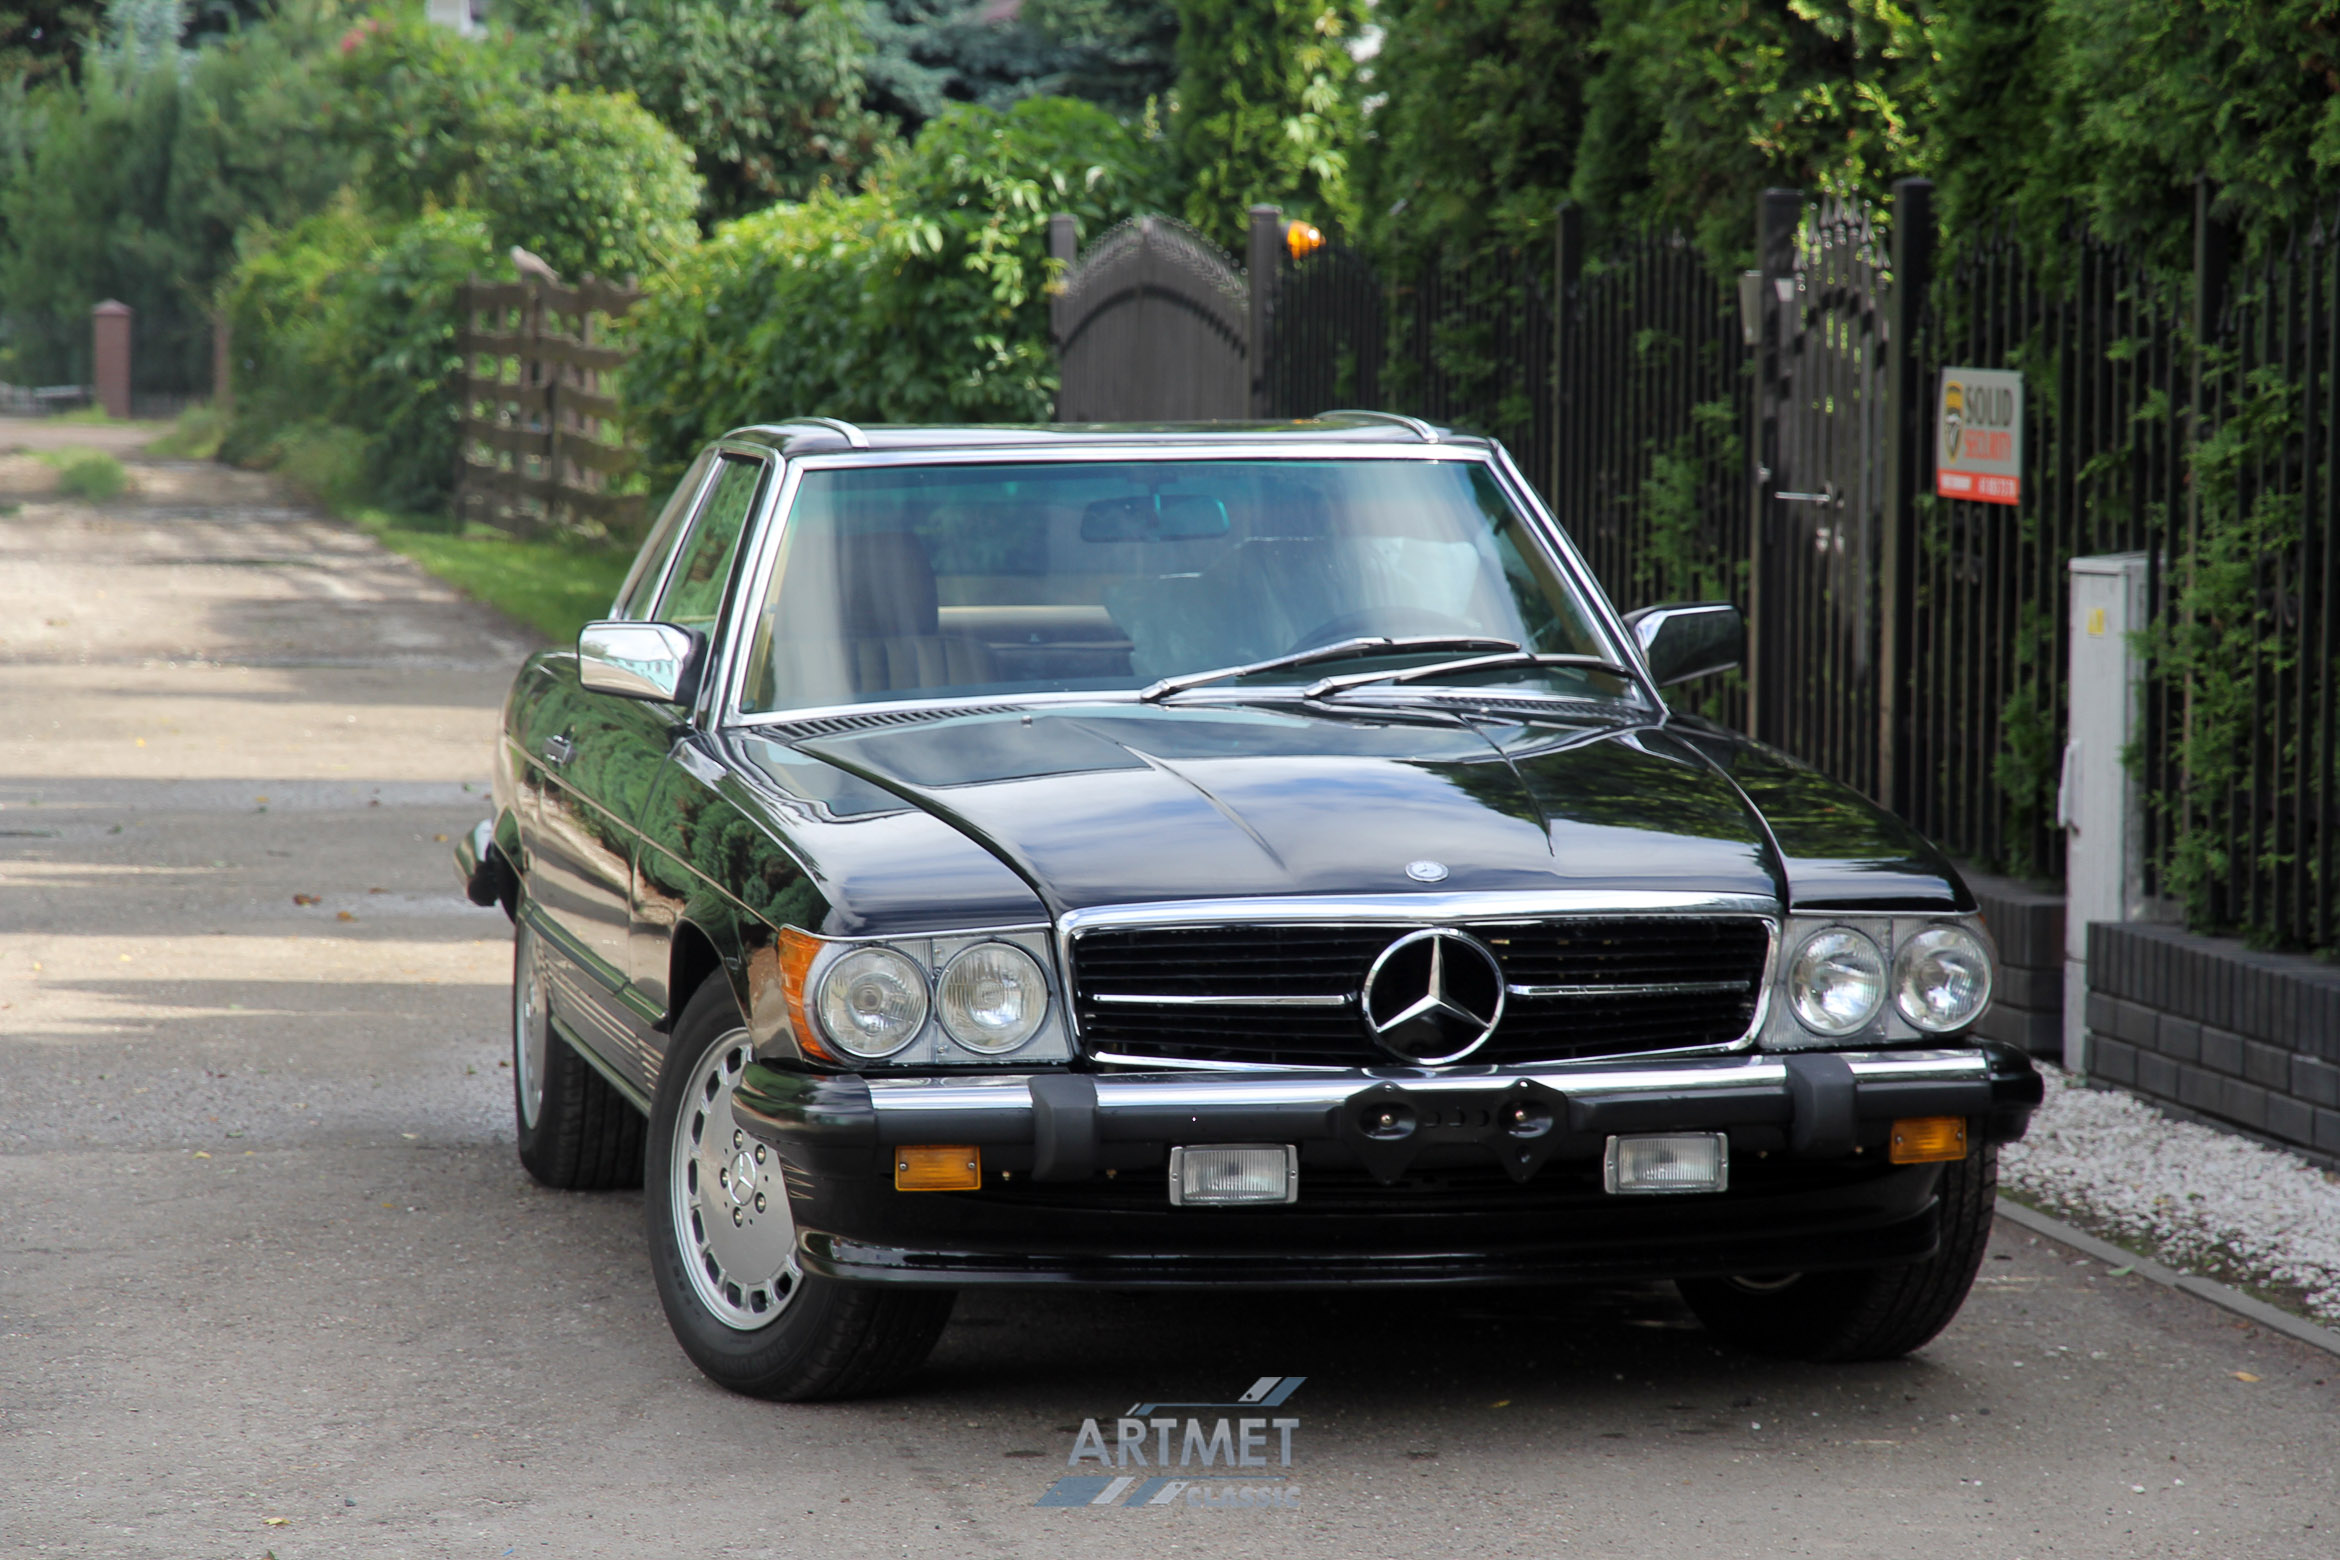 mercedes benz 560 sl r107 1988 artmet classic. Black Bedroom Furniture Sets. Home Design Ideas